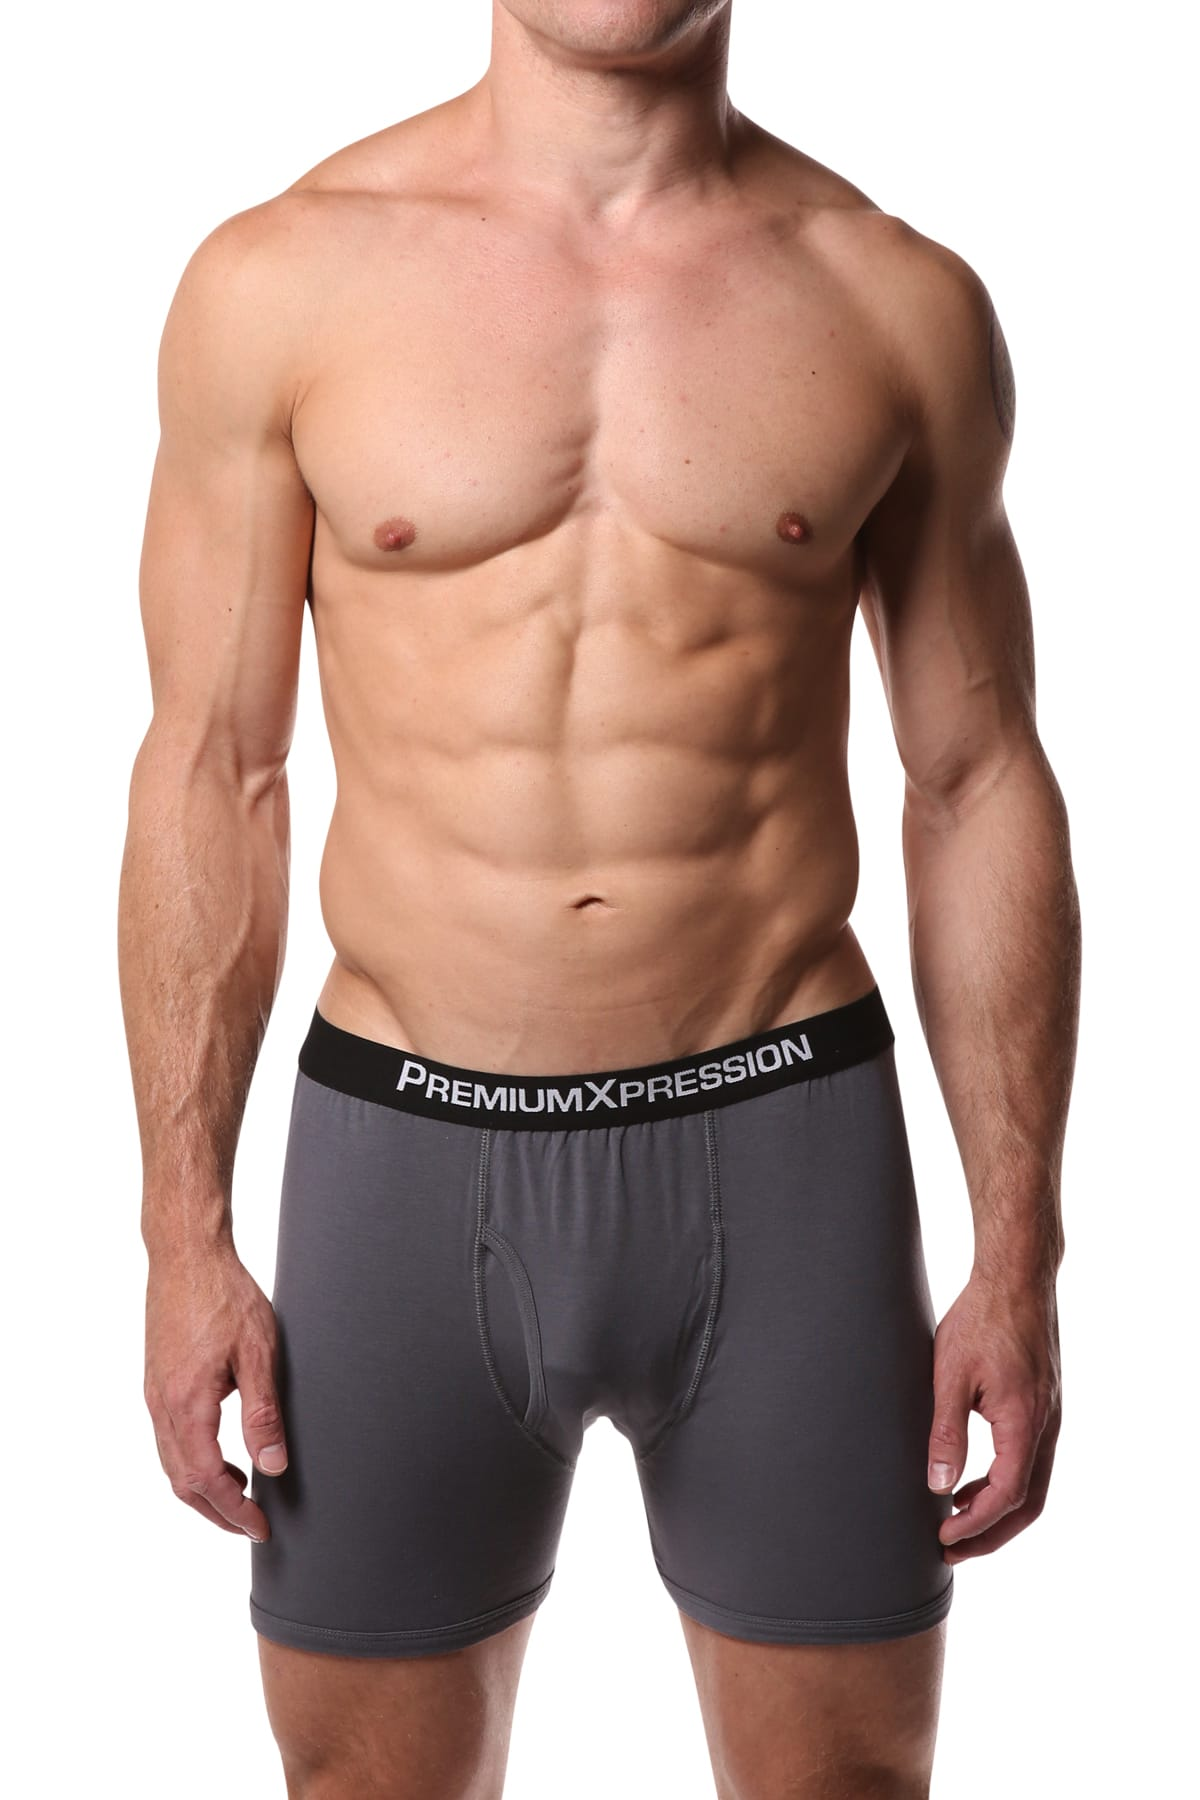 Premium Xpression Charcoal Boxer Brief